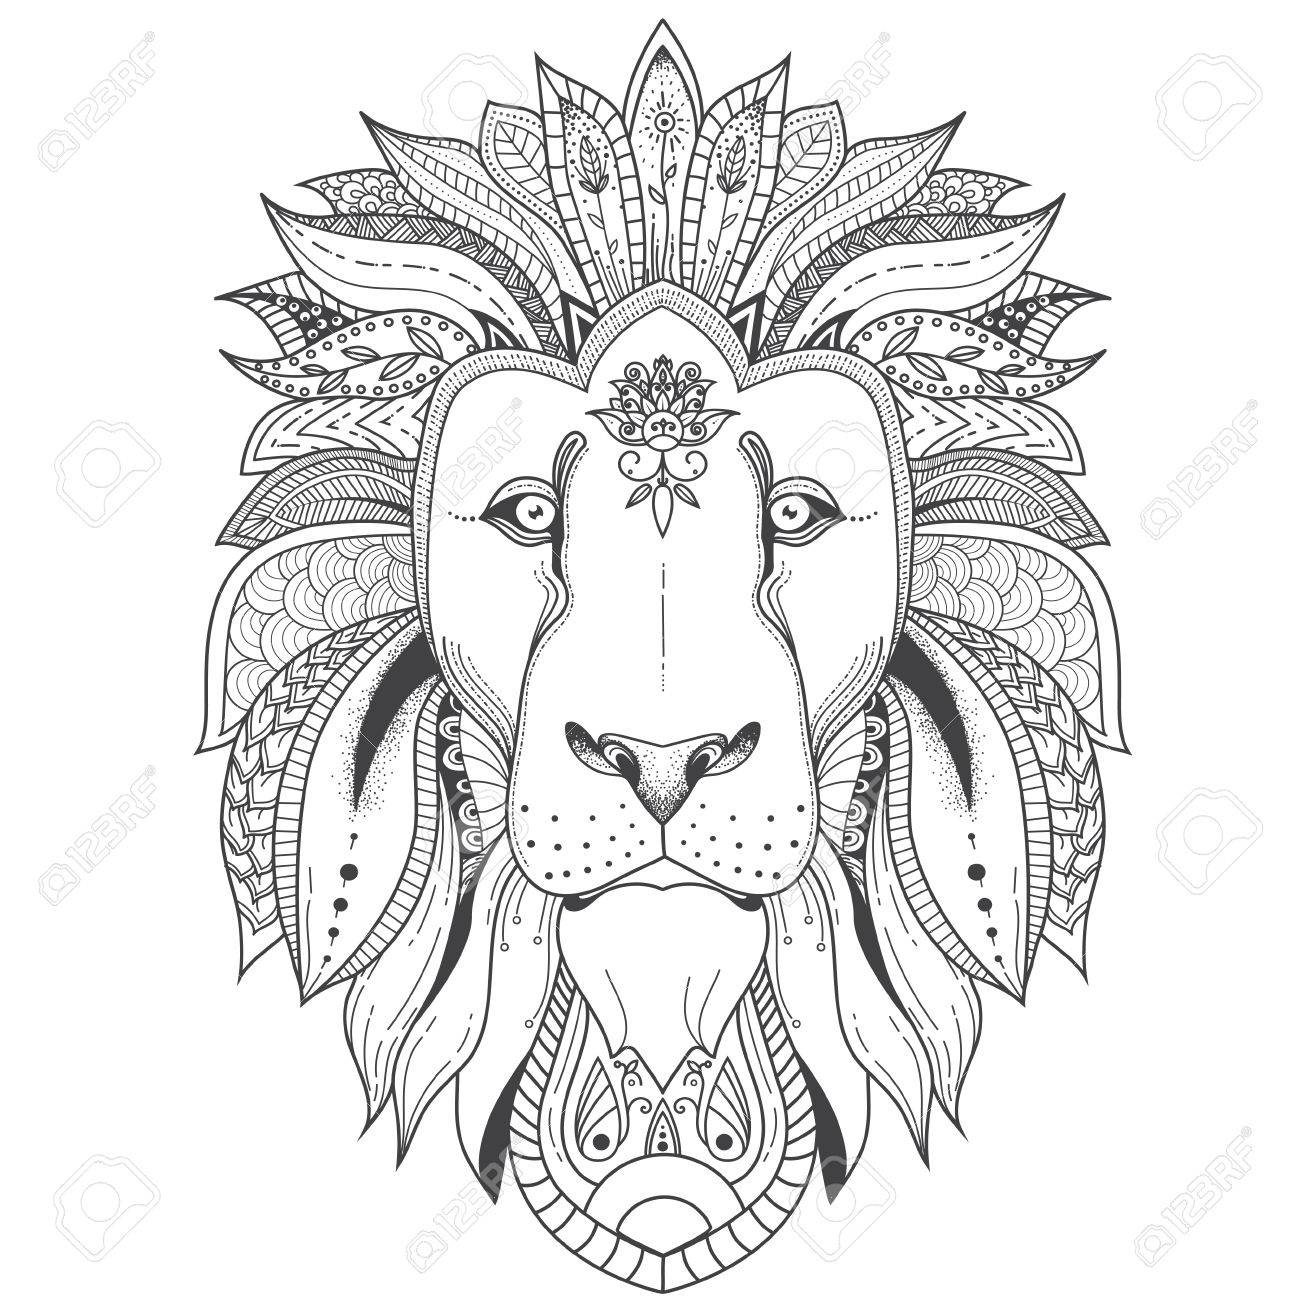 Illustration Of Lion With Tribal Mandala Patterns. Use For Print ...